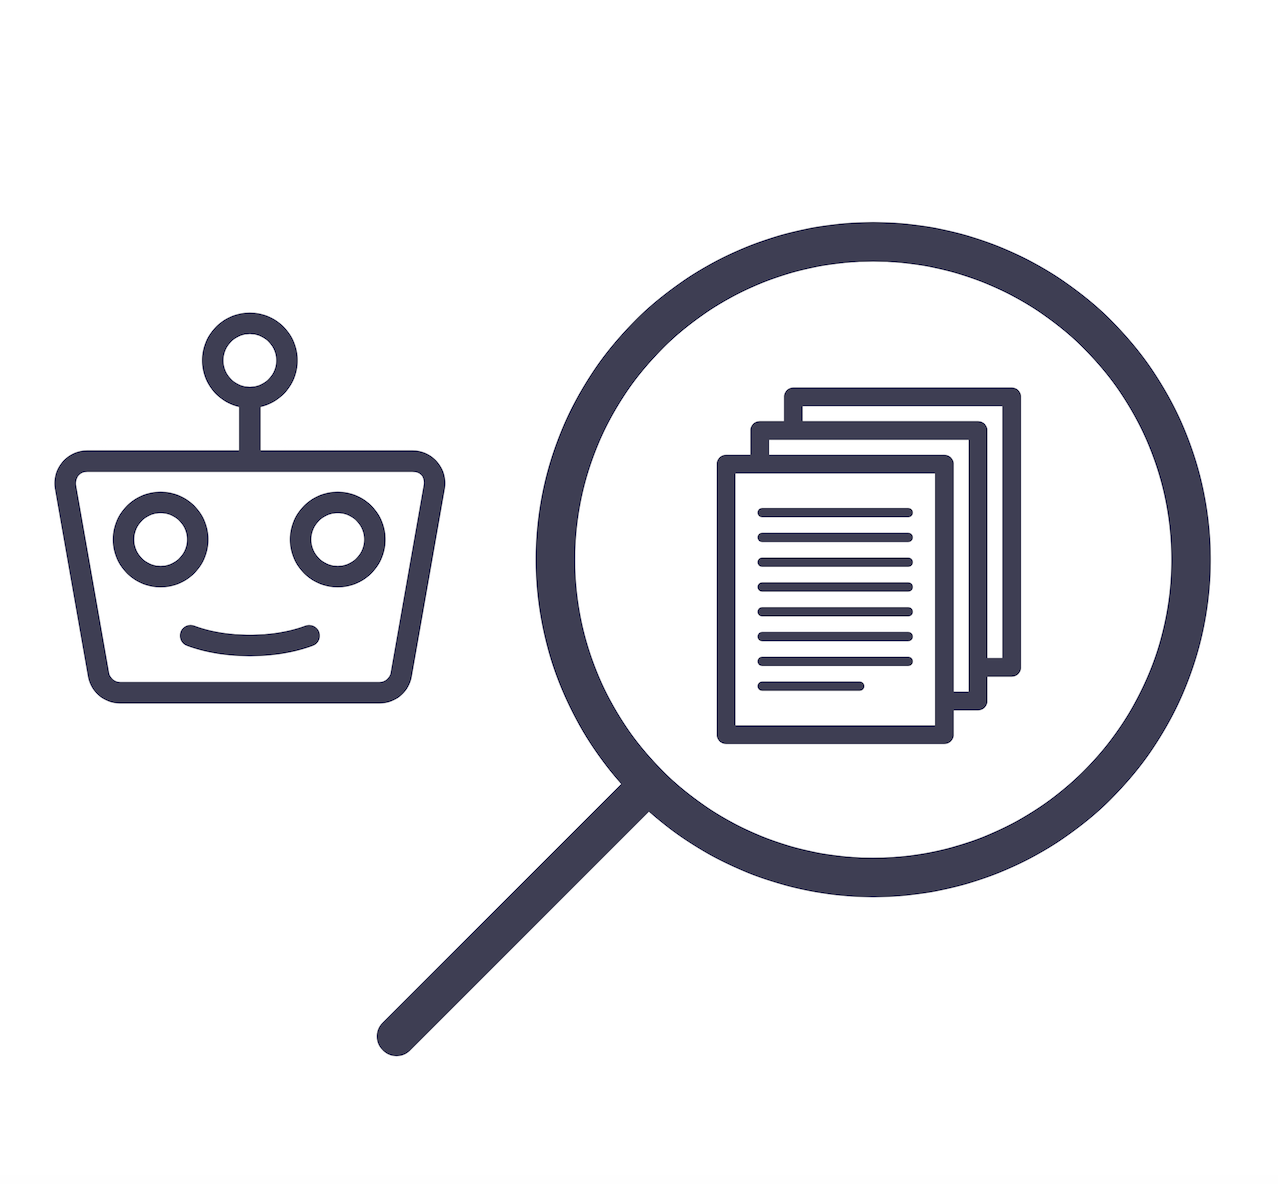 AI Powered Review - Sophisticated language and indexing tools understand context and relevance, bringing you the documents you need quickly and easily.Cognitive search reveals hidden connections and unknown unknowns in your data.Built-in iterative learning processes improve results as you review.